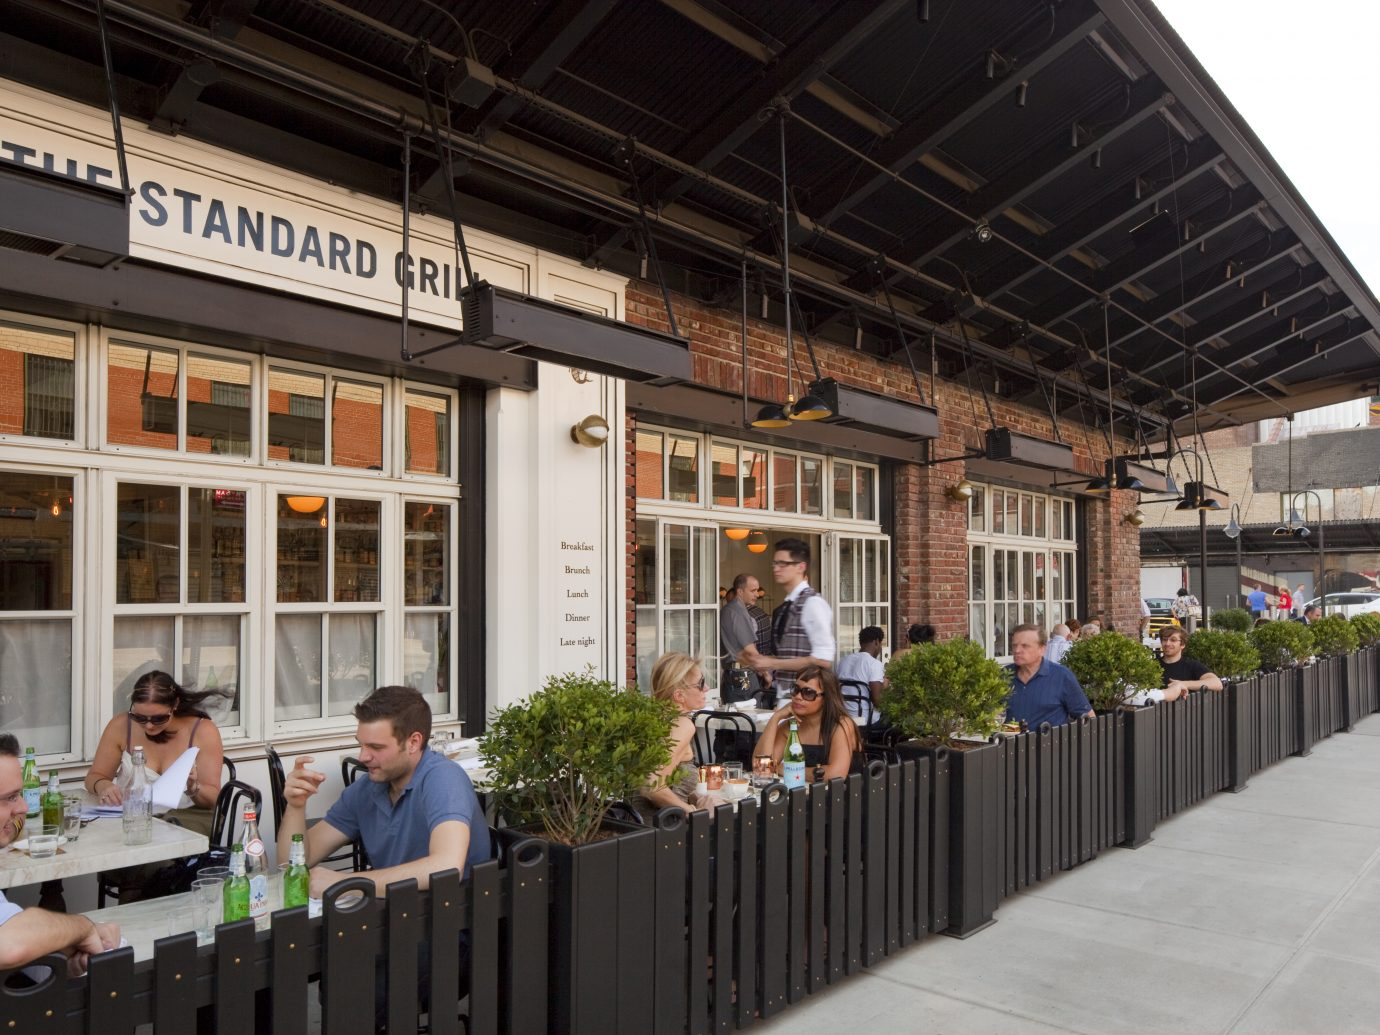 Outdoor eating at The Standard Grill